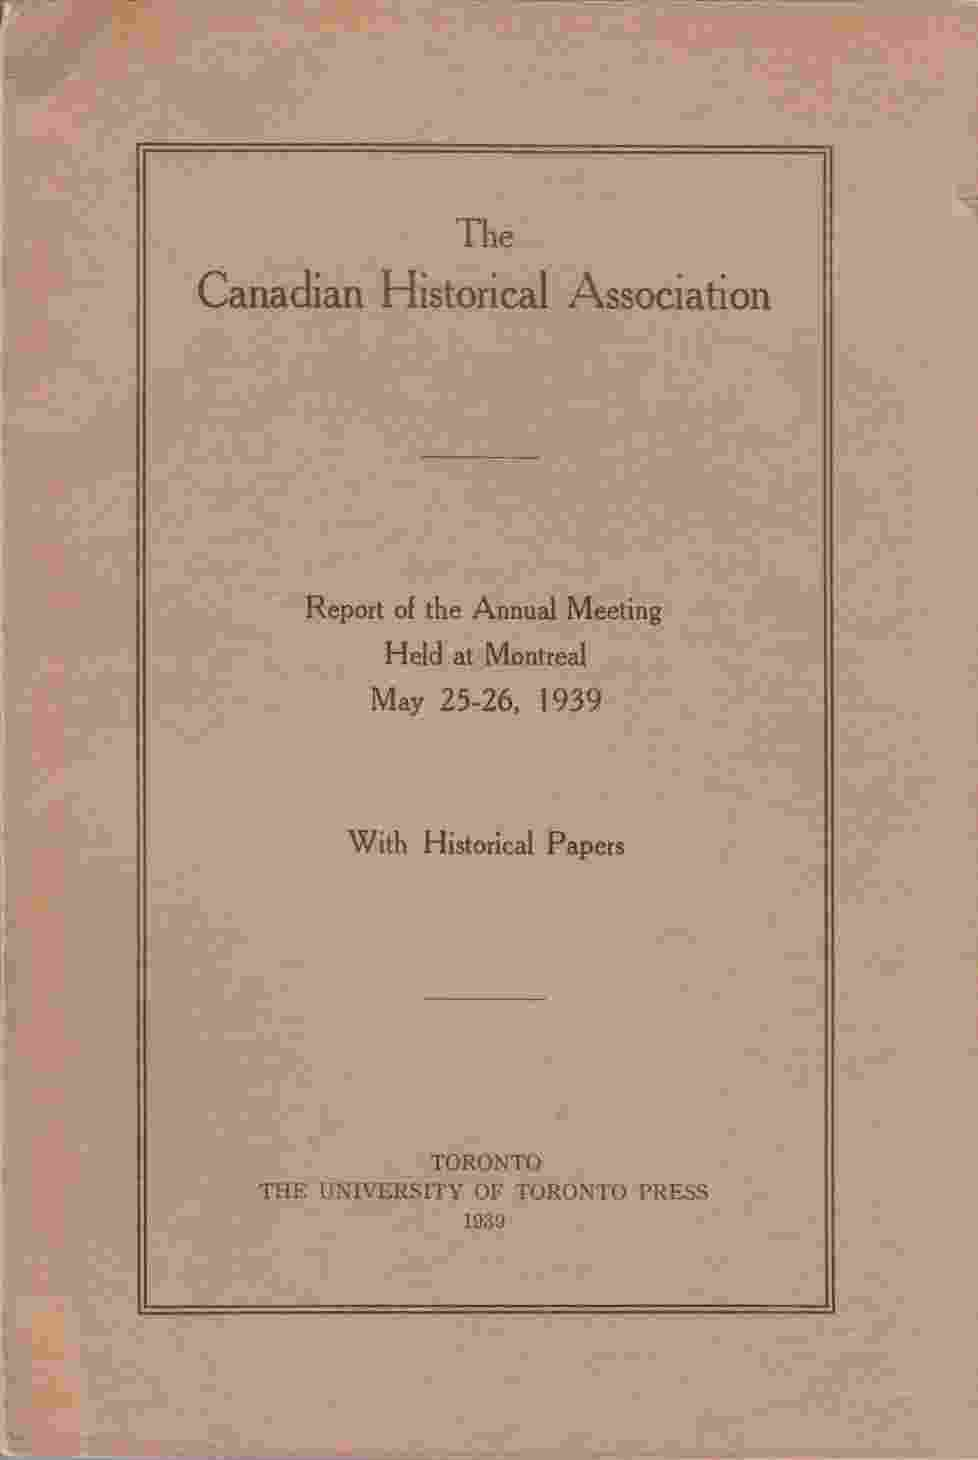 Image for Tha Canadian Historical Association: Report of the Annual Meeting Held At Montreal May 25-26, 1939 with Historical Papers